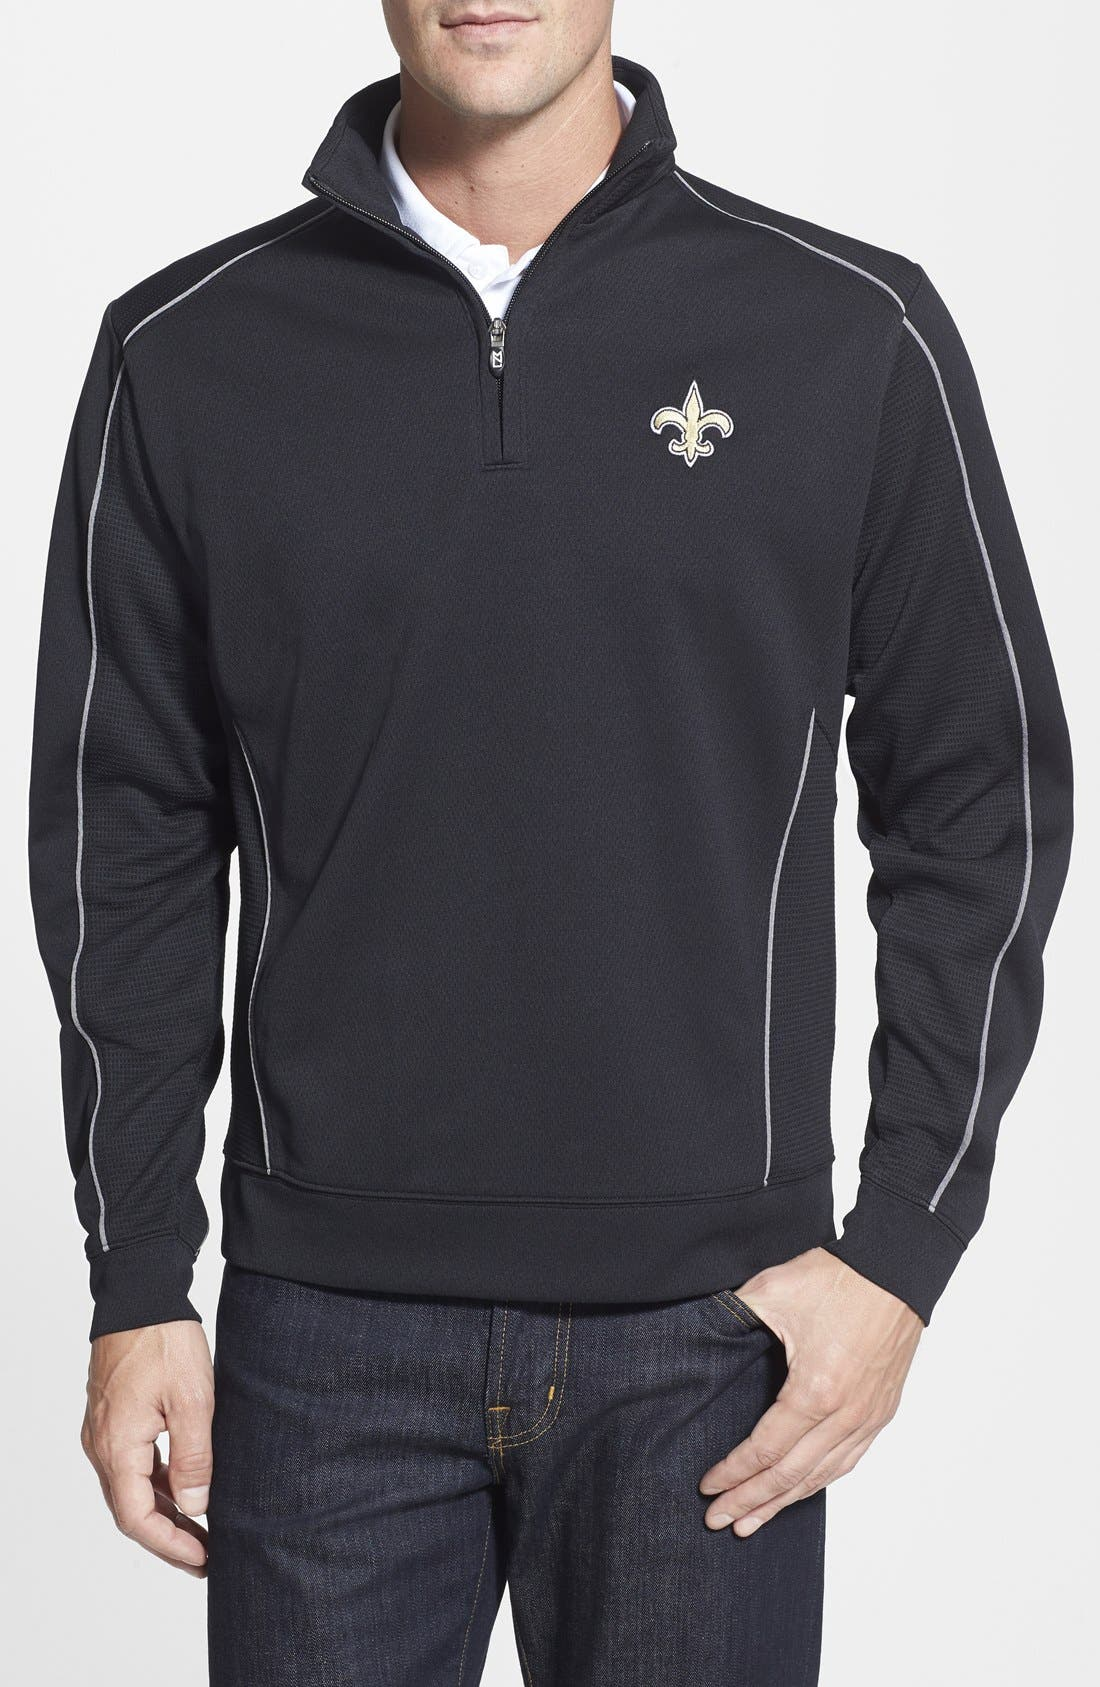 Main Image - Cutter & Buck New Orleans Saints - Edge DryTec Moisture Wicking Half Zip Pullover